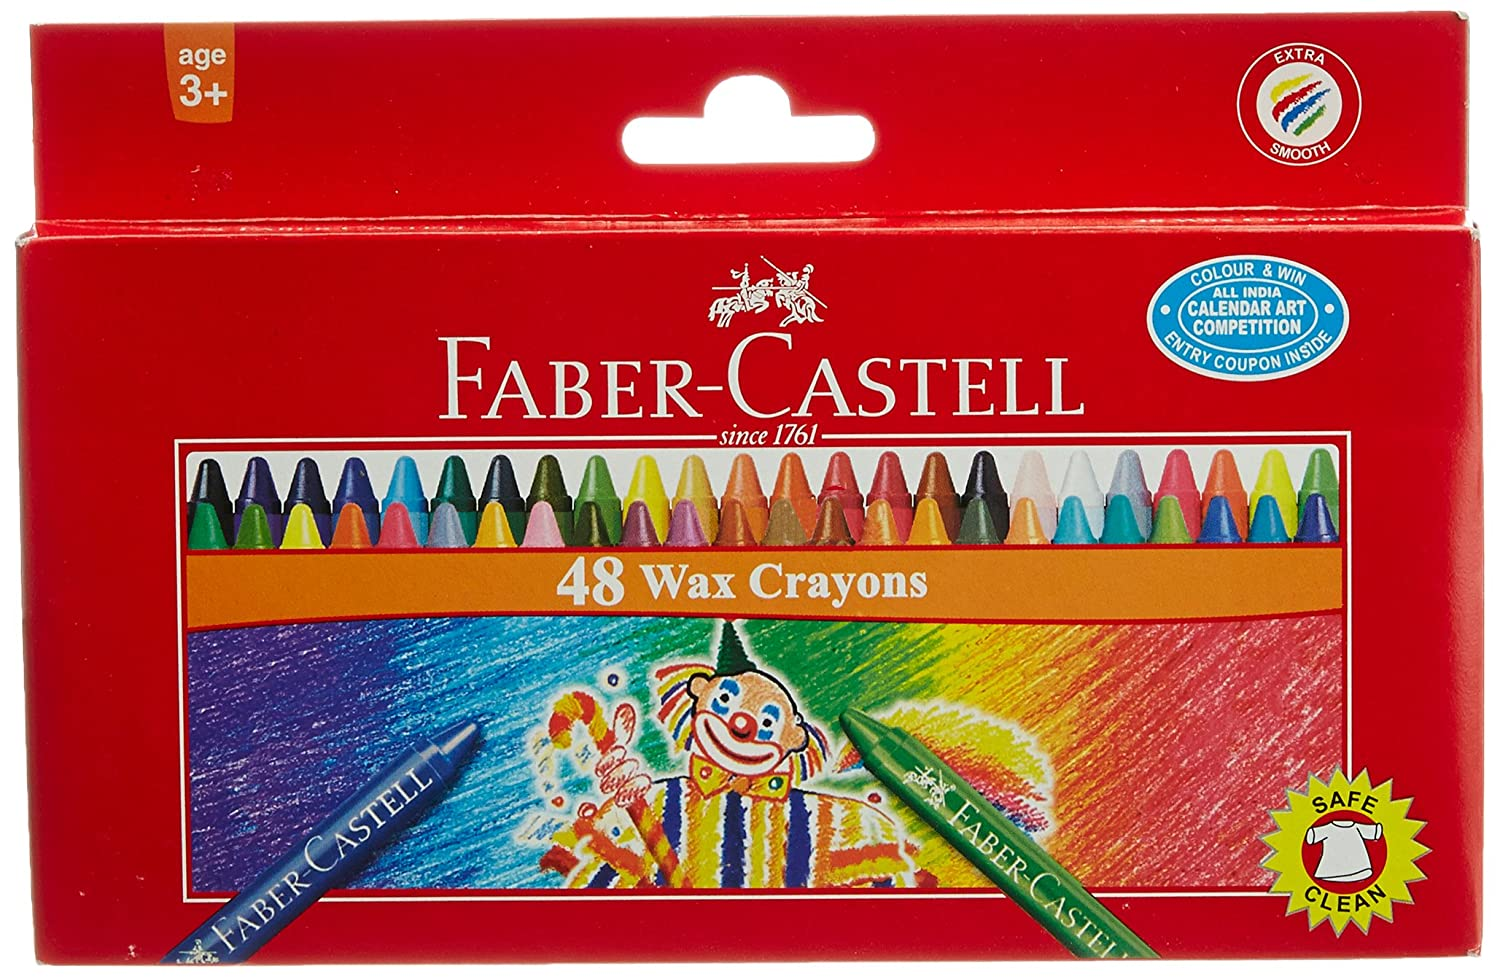 Faber Castell Wax Crayons - 48 Shades by Faber Castell   B00LY27WYK